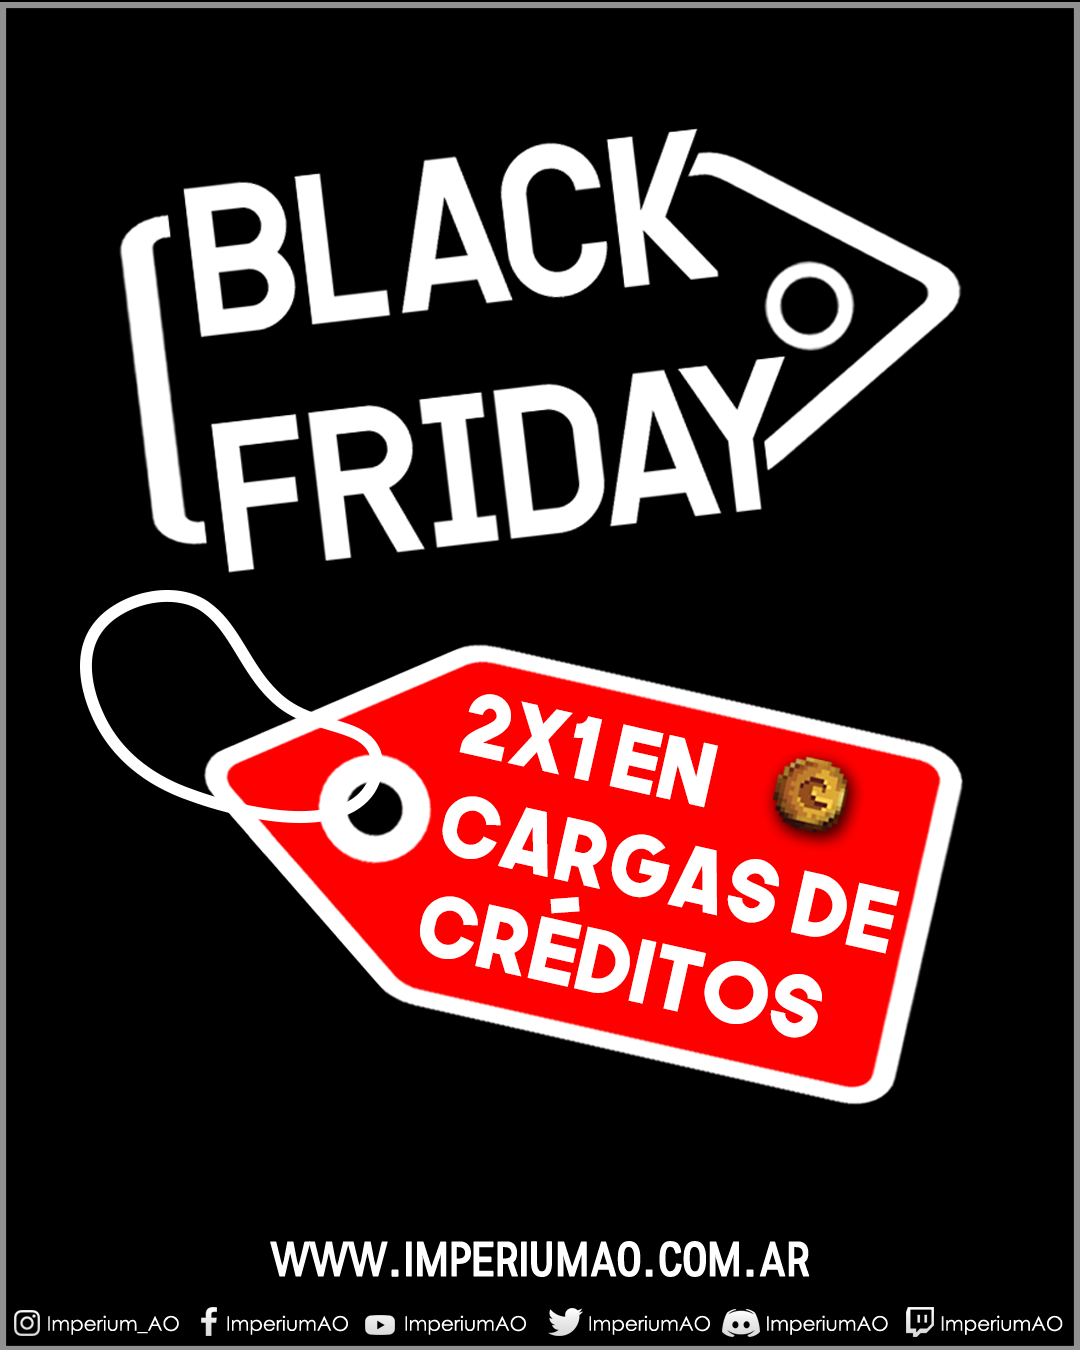 BlackFriday en ImperiumAO